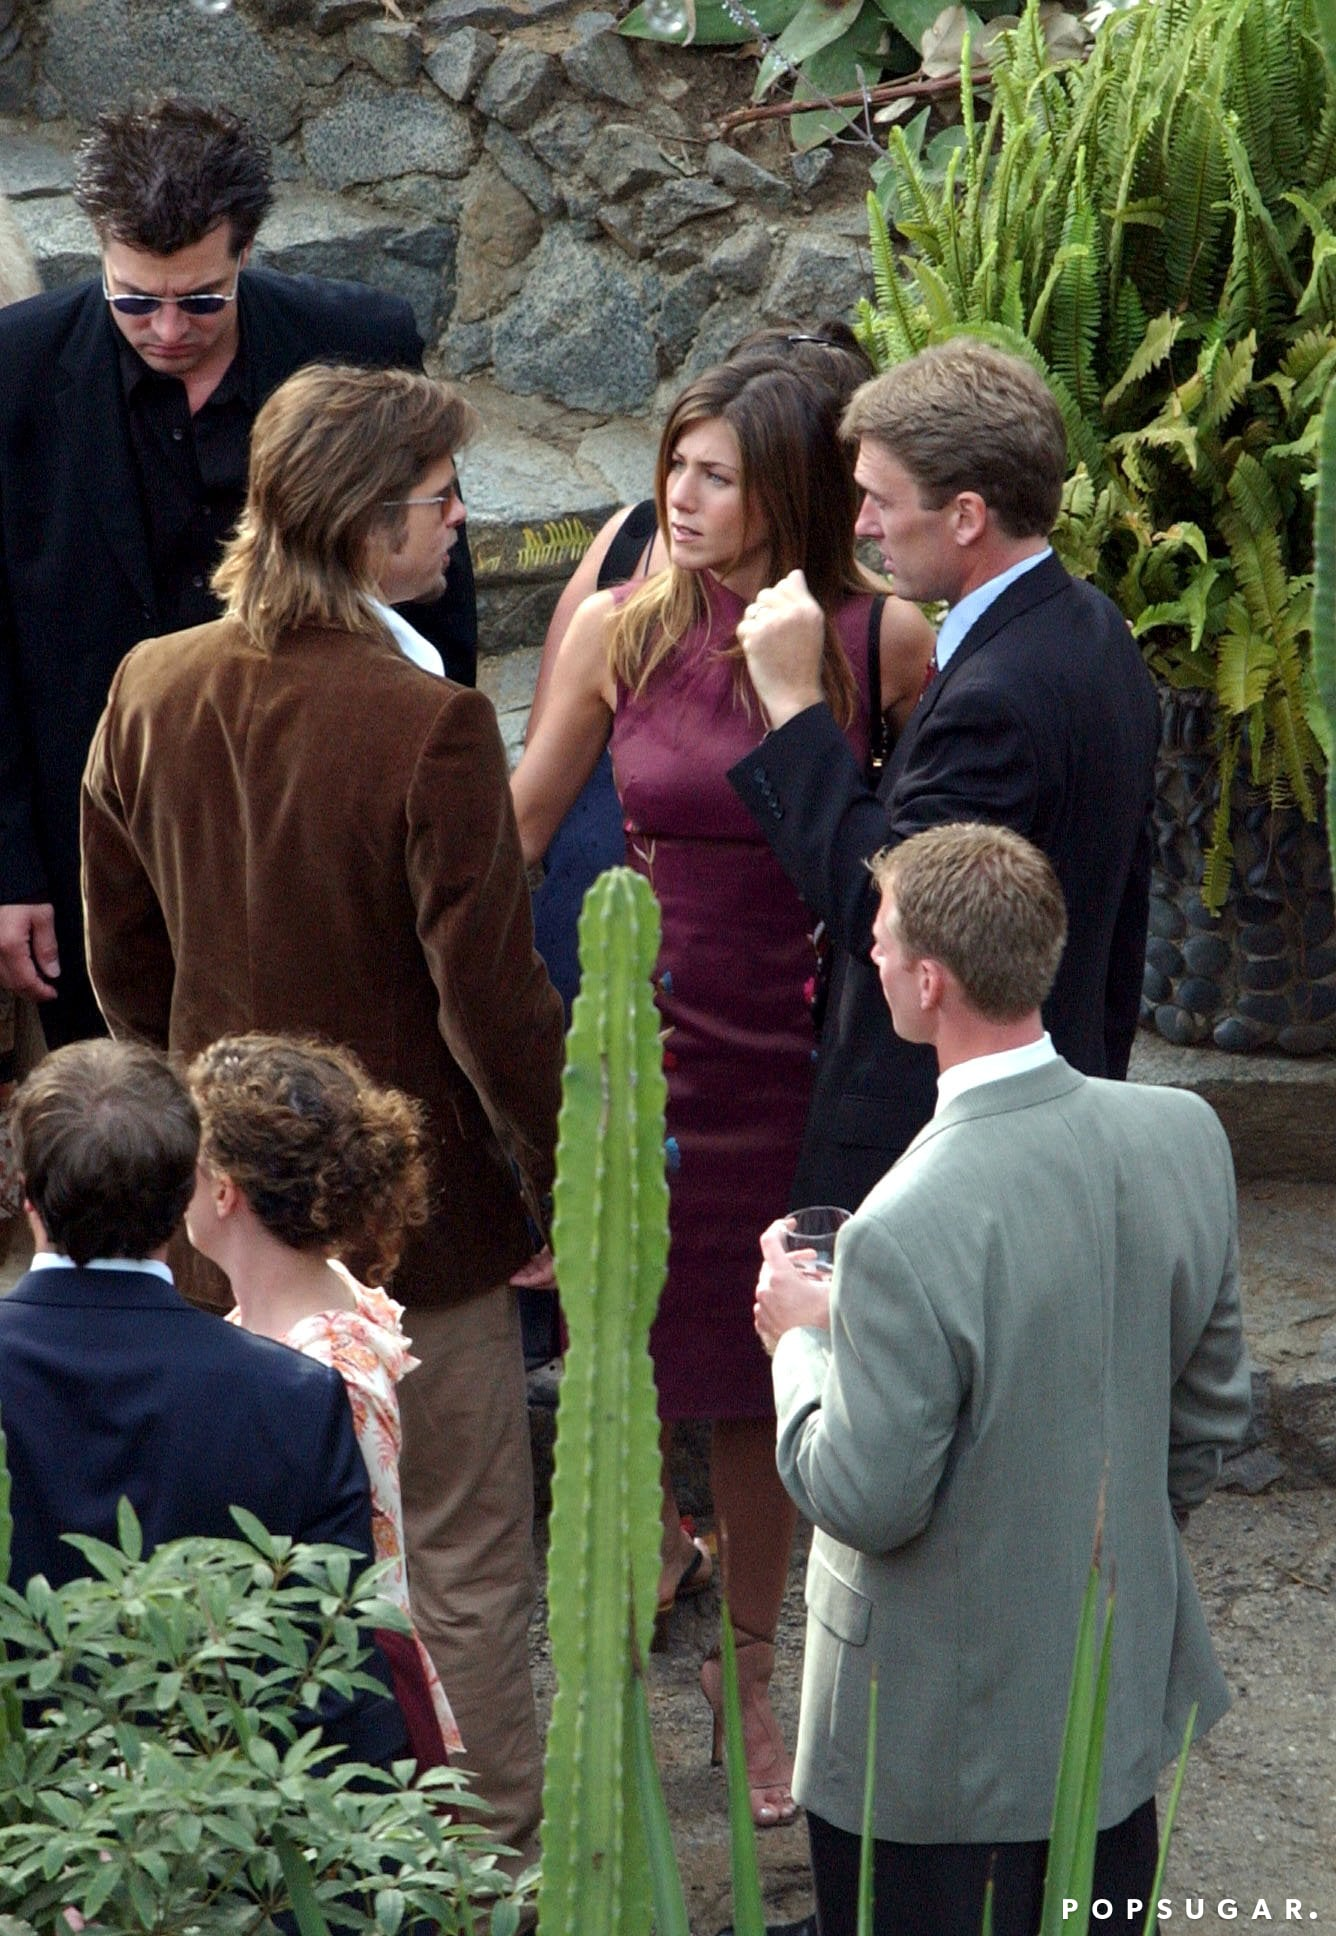 Brad Pitt showed support for Jennifer Aniston as a bridesmaid in a friend's LA wedding in November 2002.